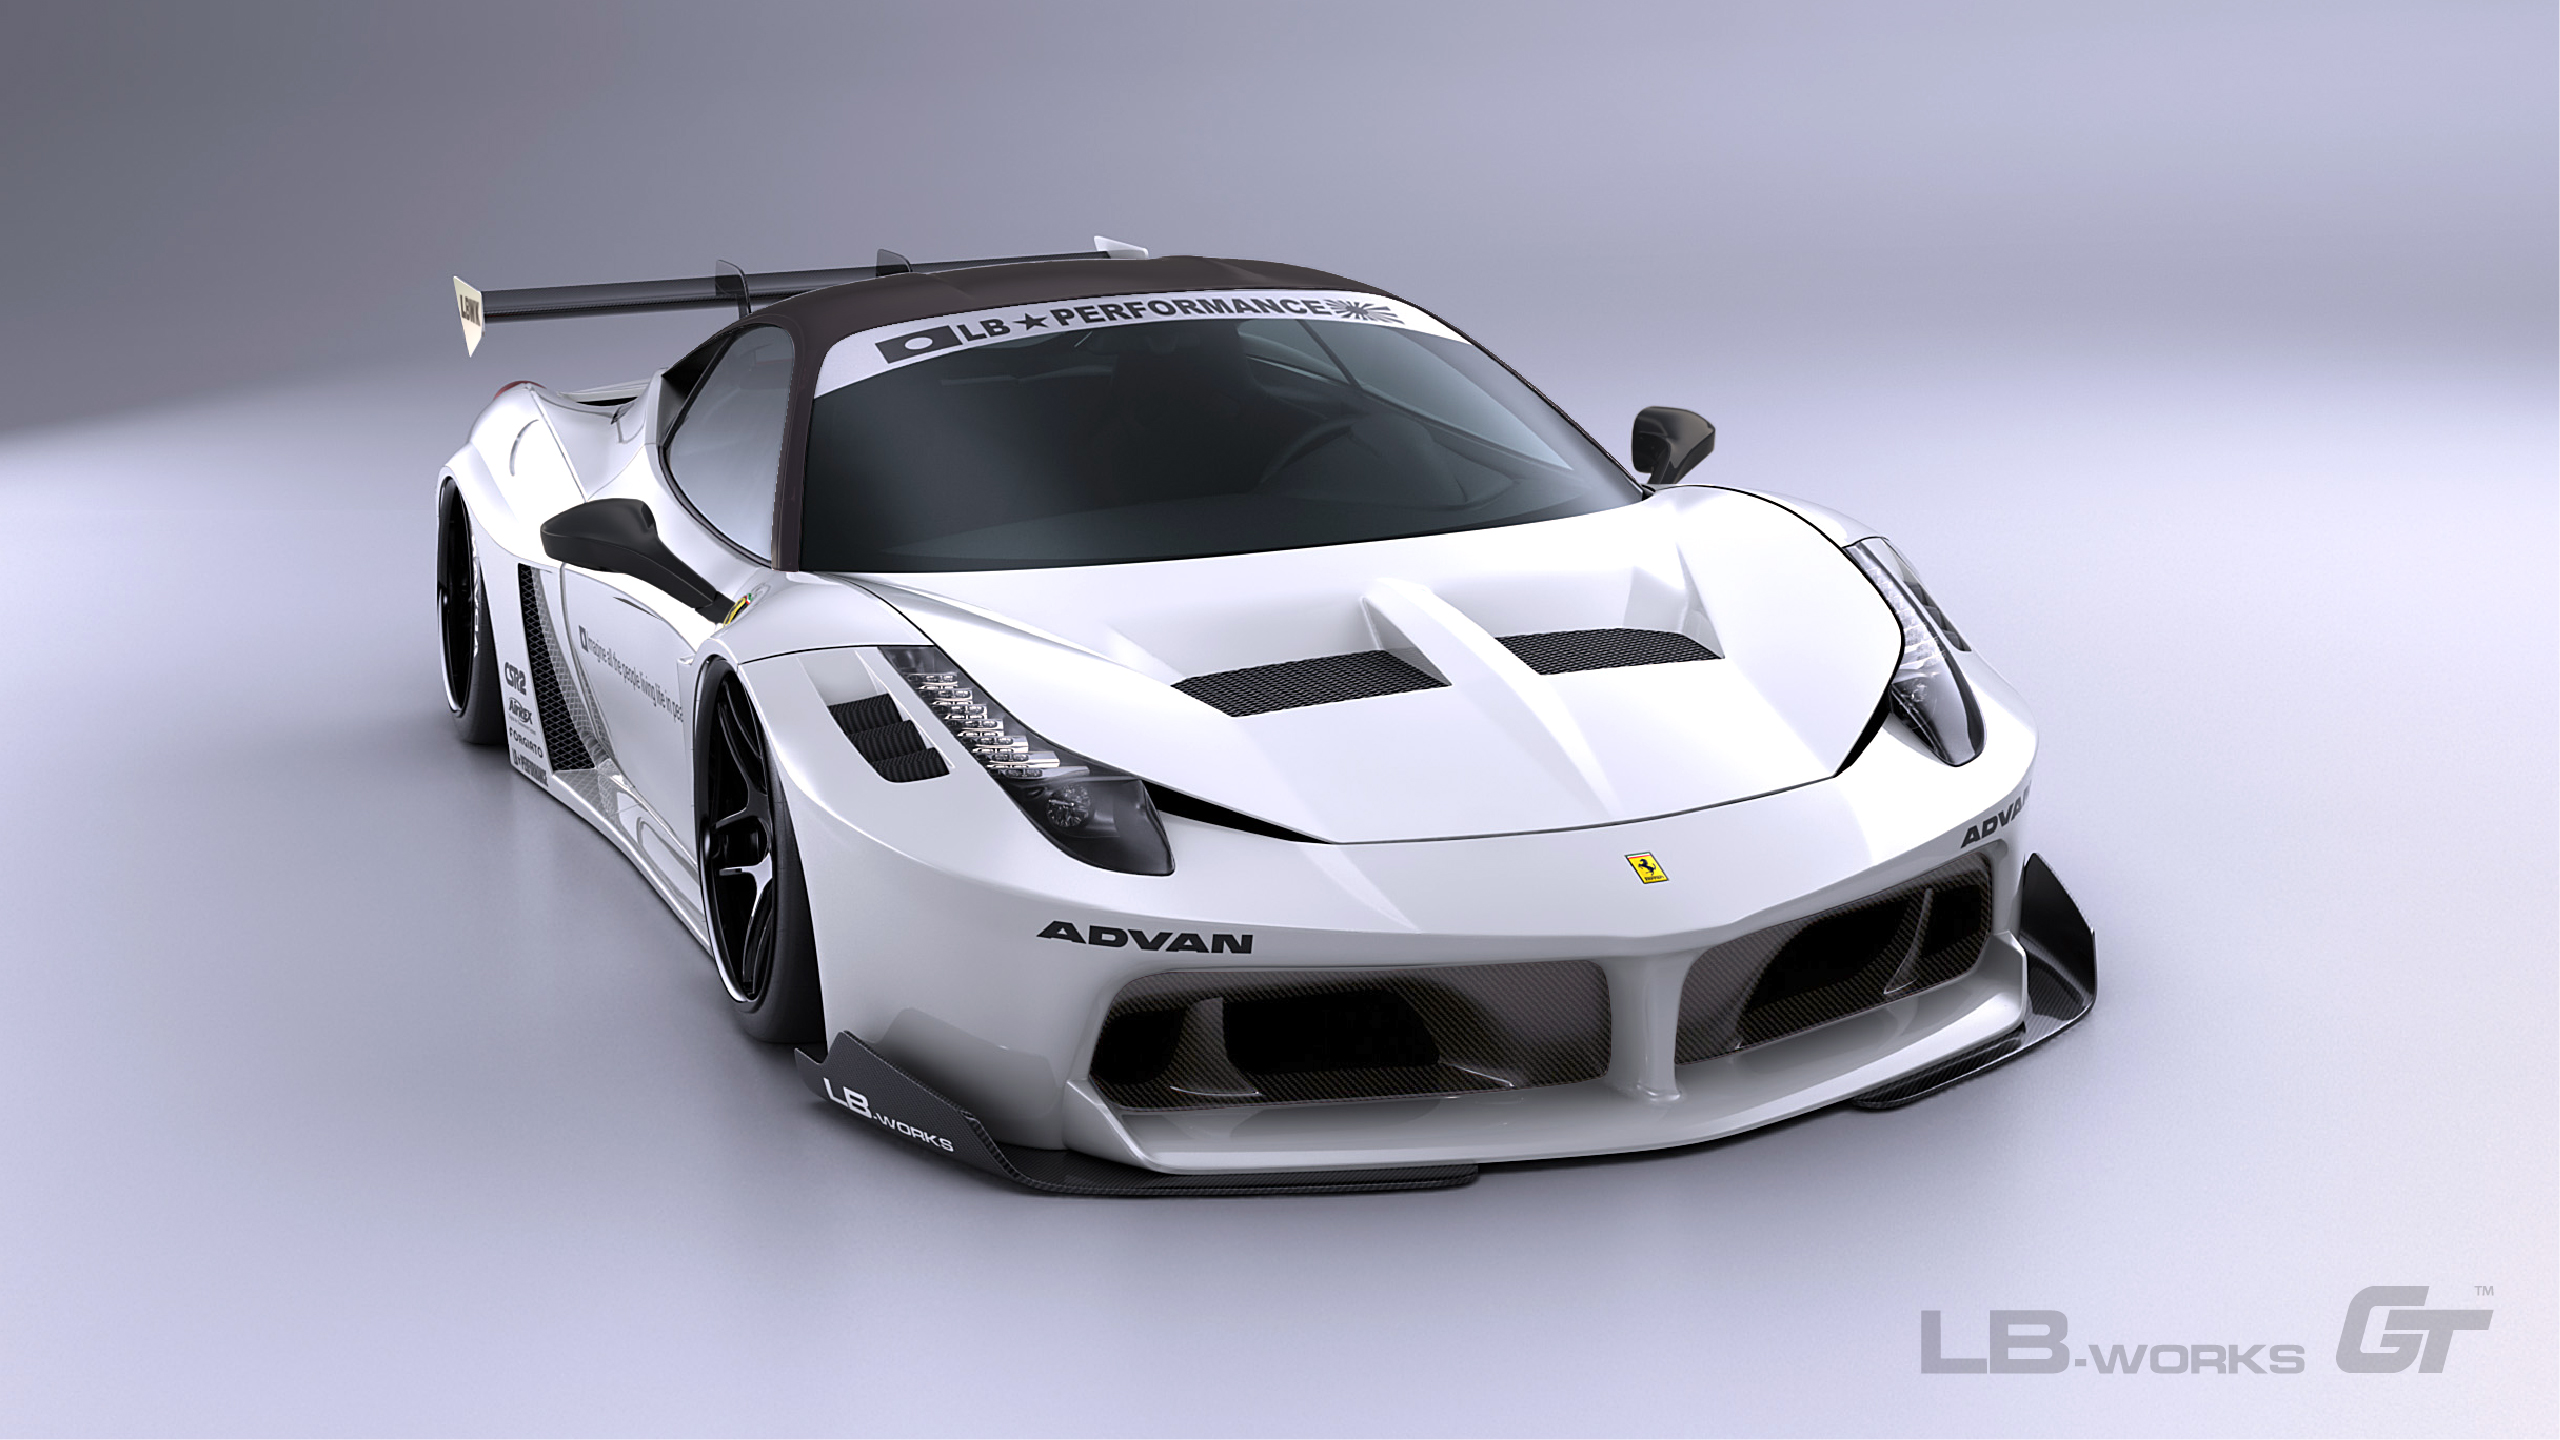 16-100 LB-Silhouette WORKS 458 GT